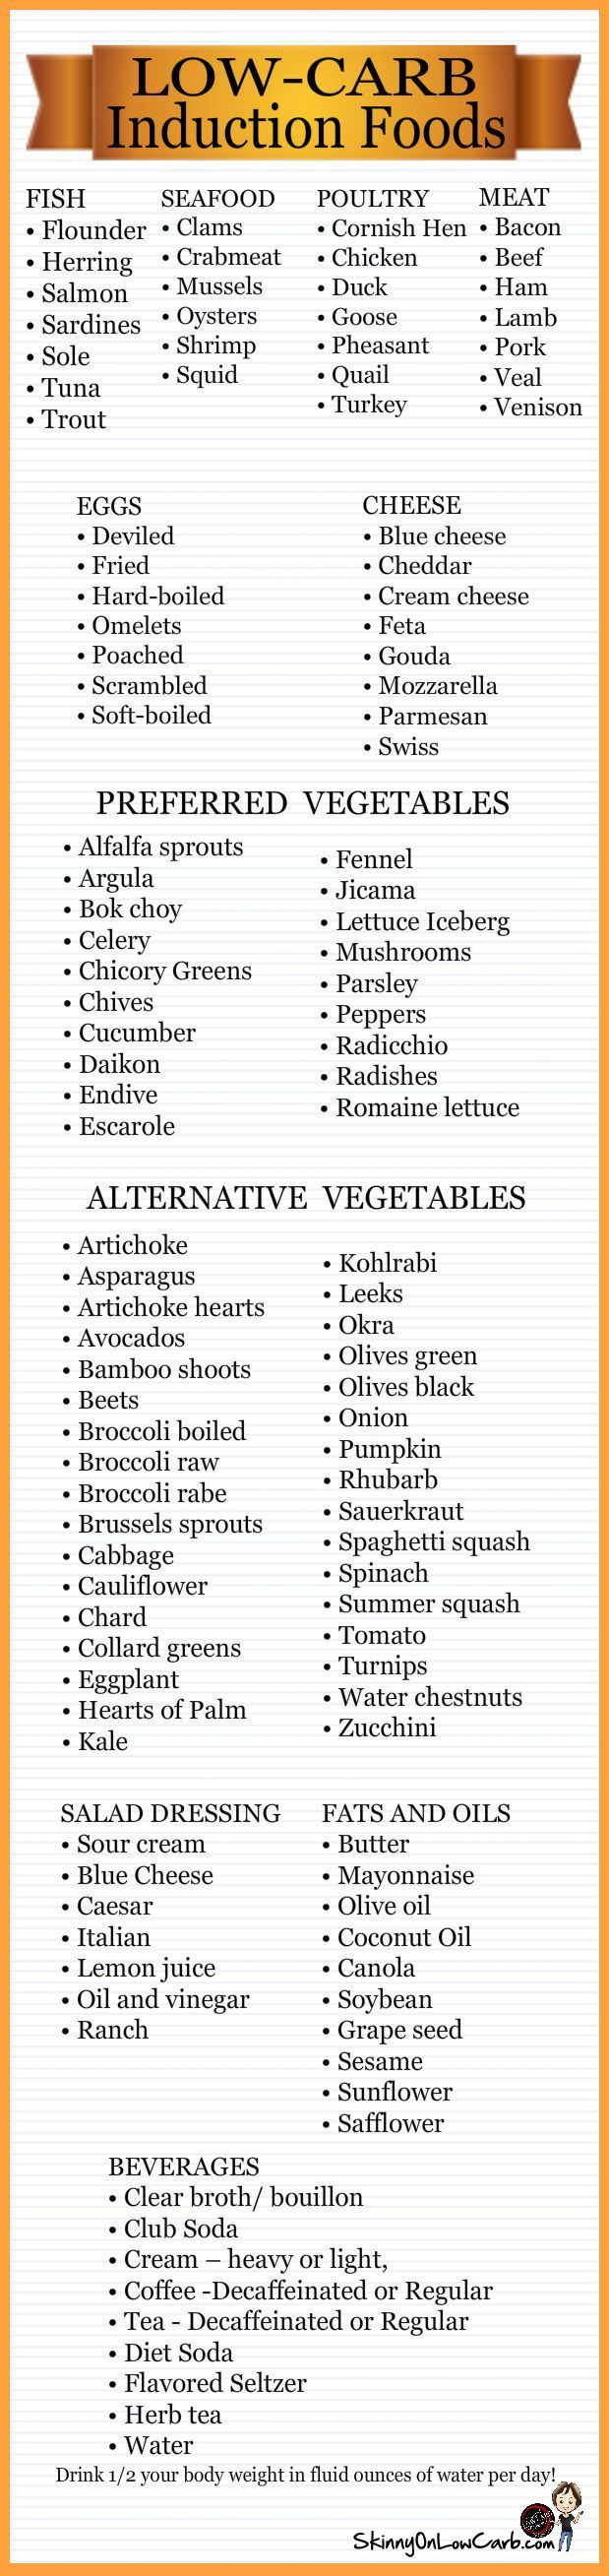 I am looking to take off those last few pounds b4 the beach! So I decided to go onto induction for the last 2 weeks before vacation. This quick and easy to see chart of #lowcarbinduction foods will help to keep me on track! You can find more like it, low-carb tips & thousands of certified low-carb recipes all FREE on my website! SkinnyOnLowCarb.com